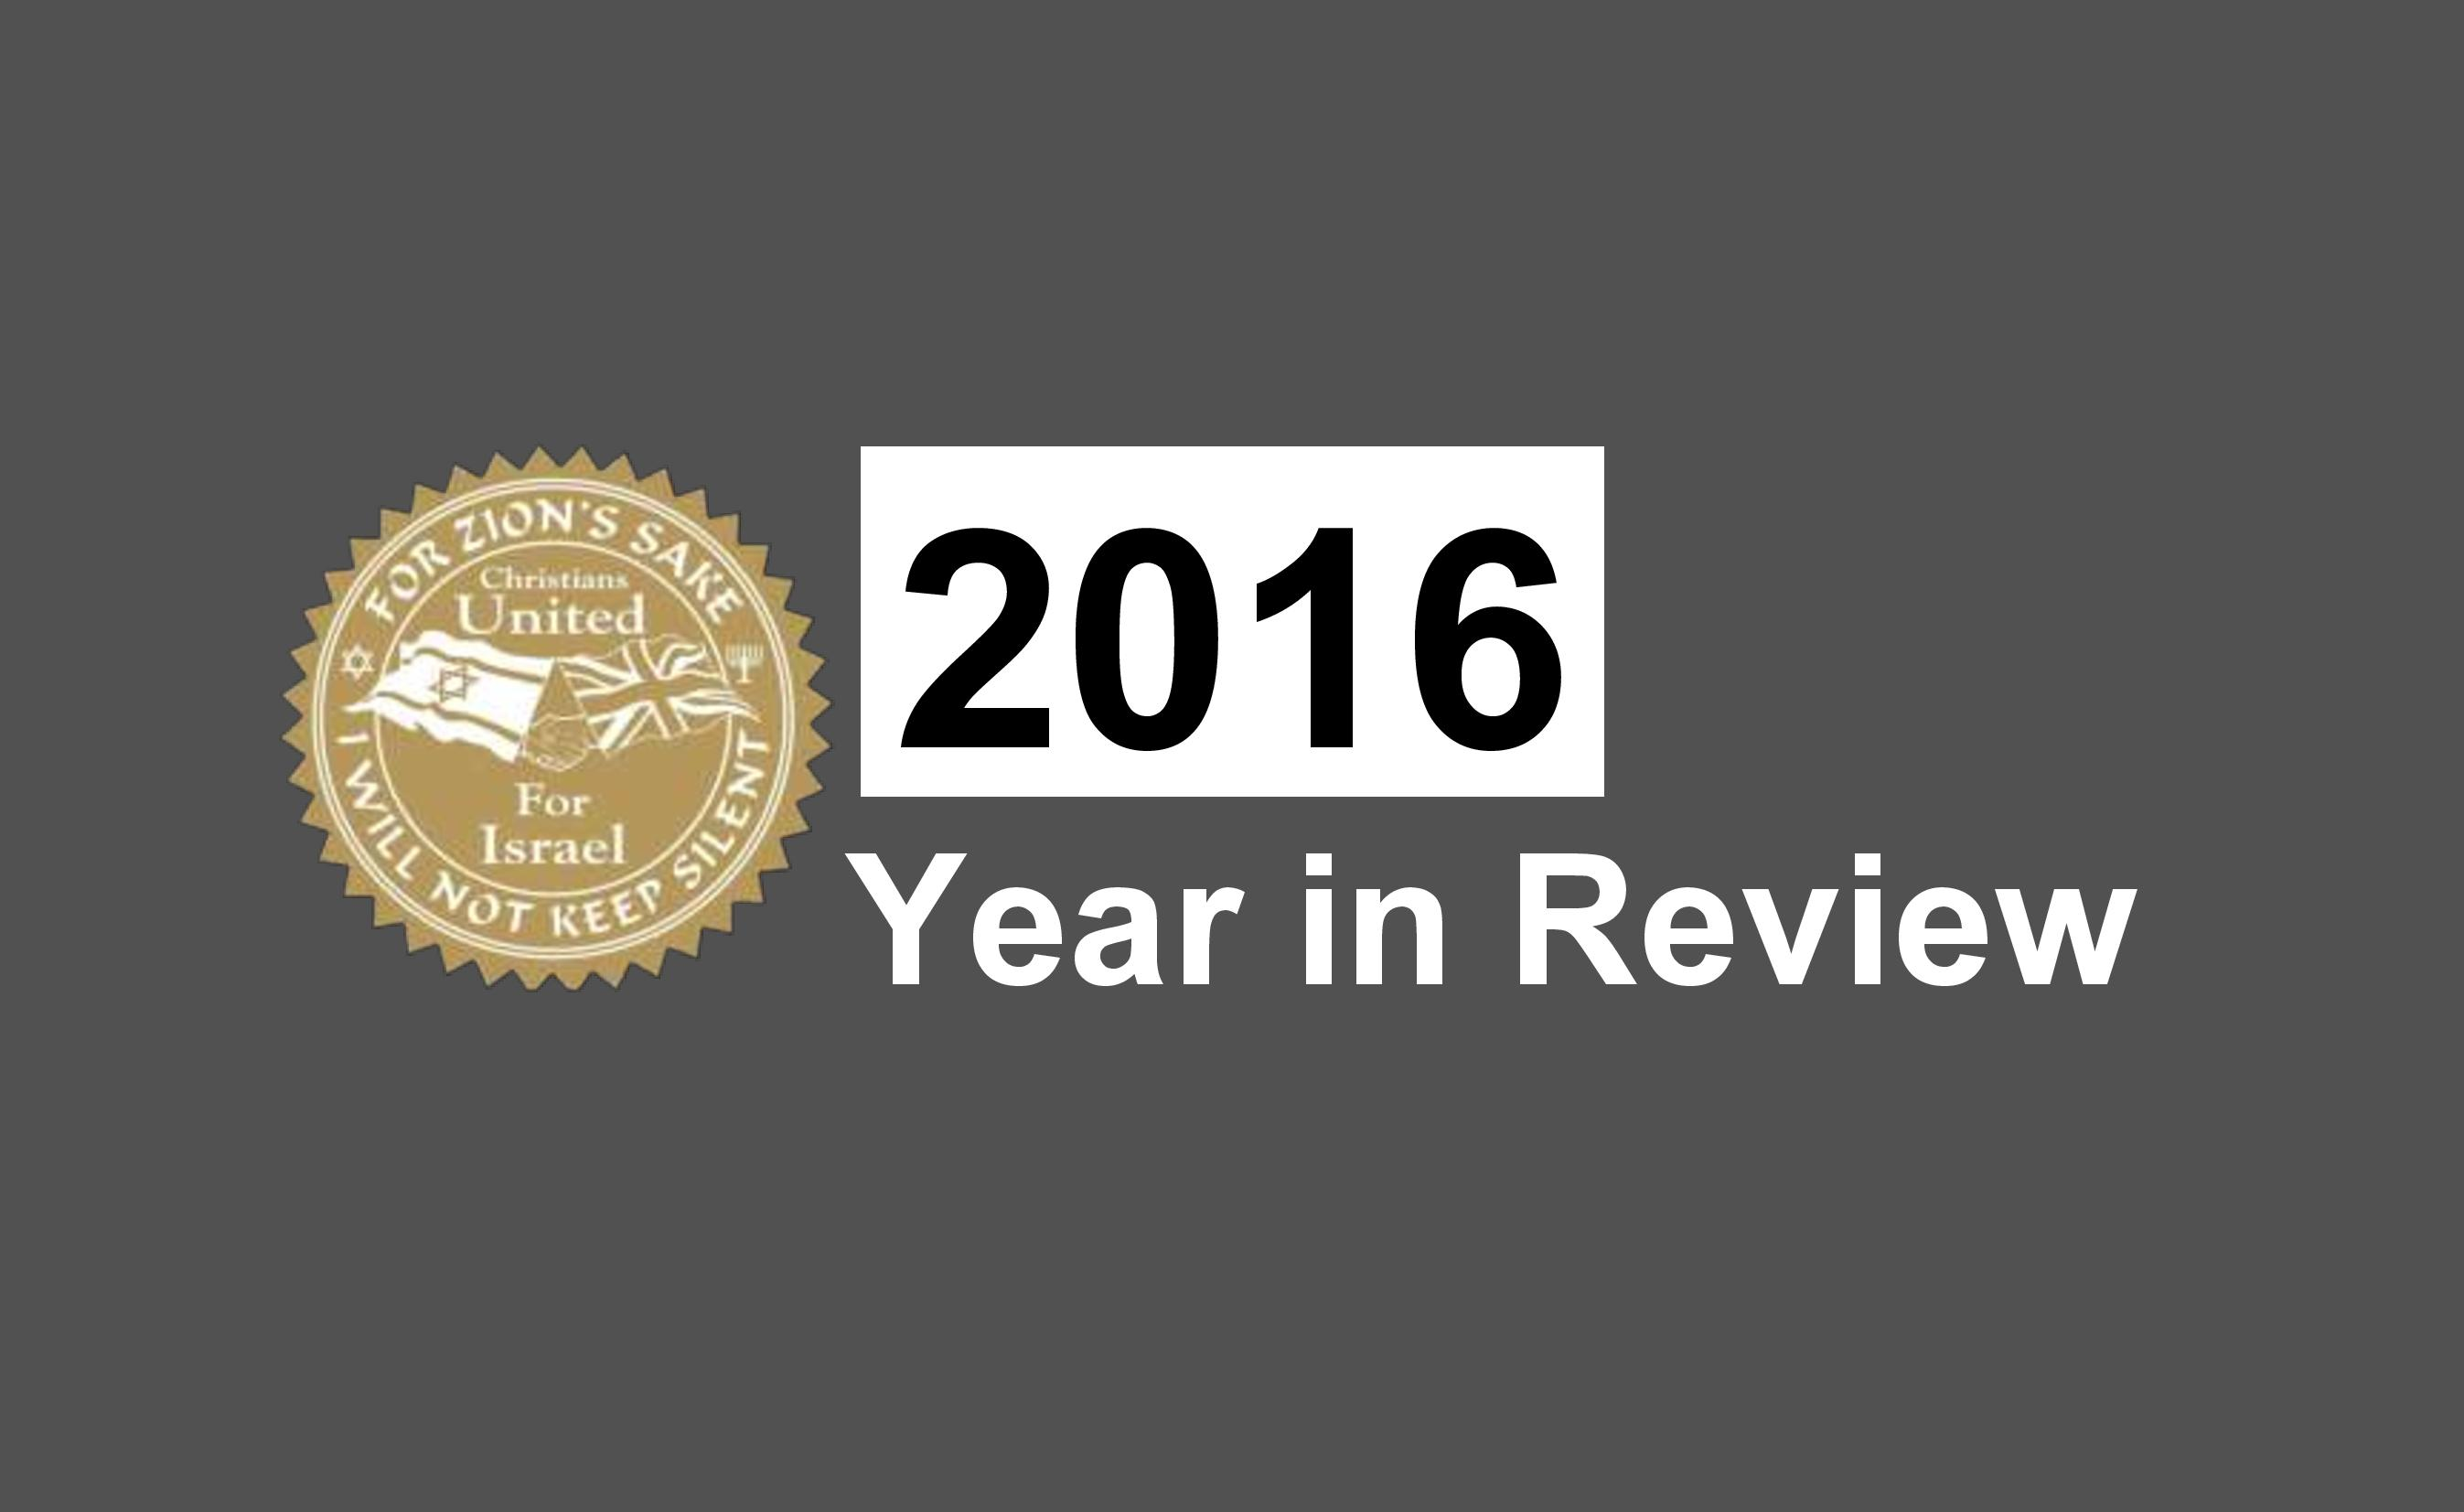 CUFI: Year in Pictures